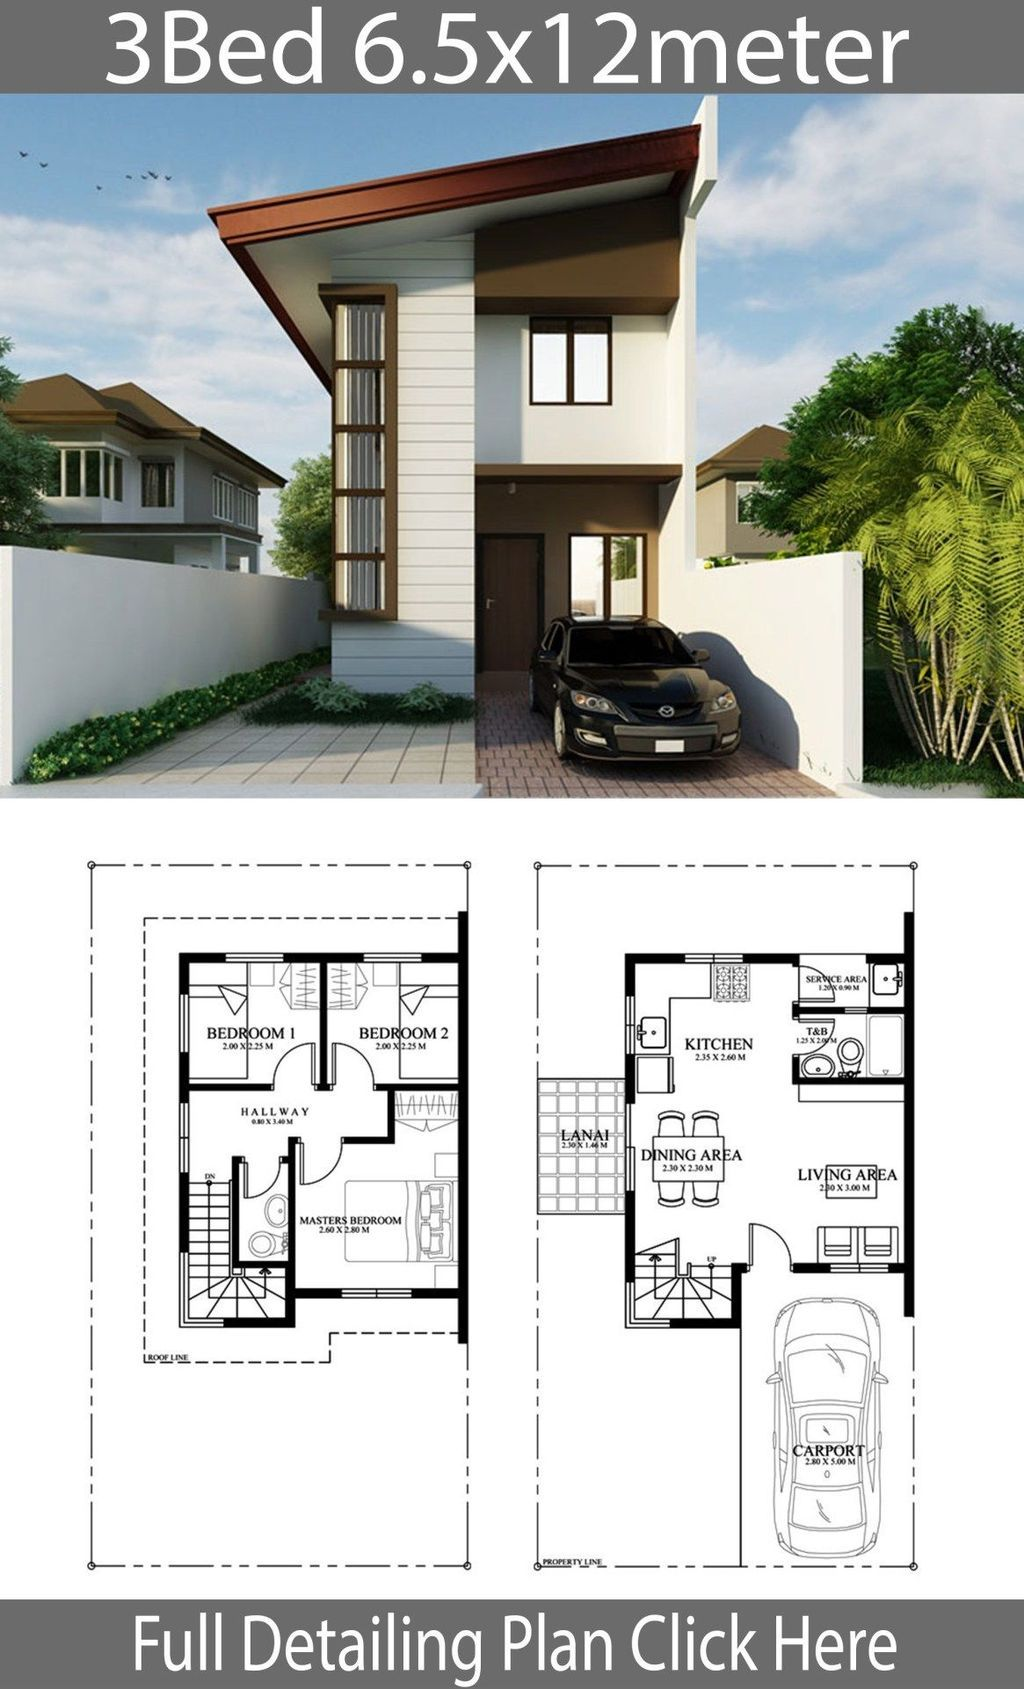 35 Lovely Small Home Design Ideas With Two Floor That Have Minimalist Architecture Model House Plan Small House Design Plans Architectural House Plans